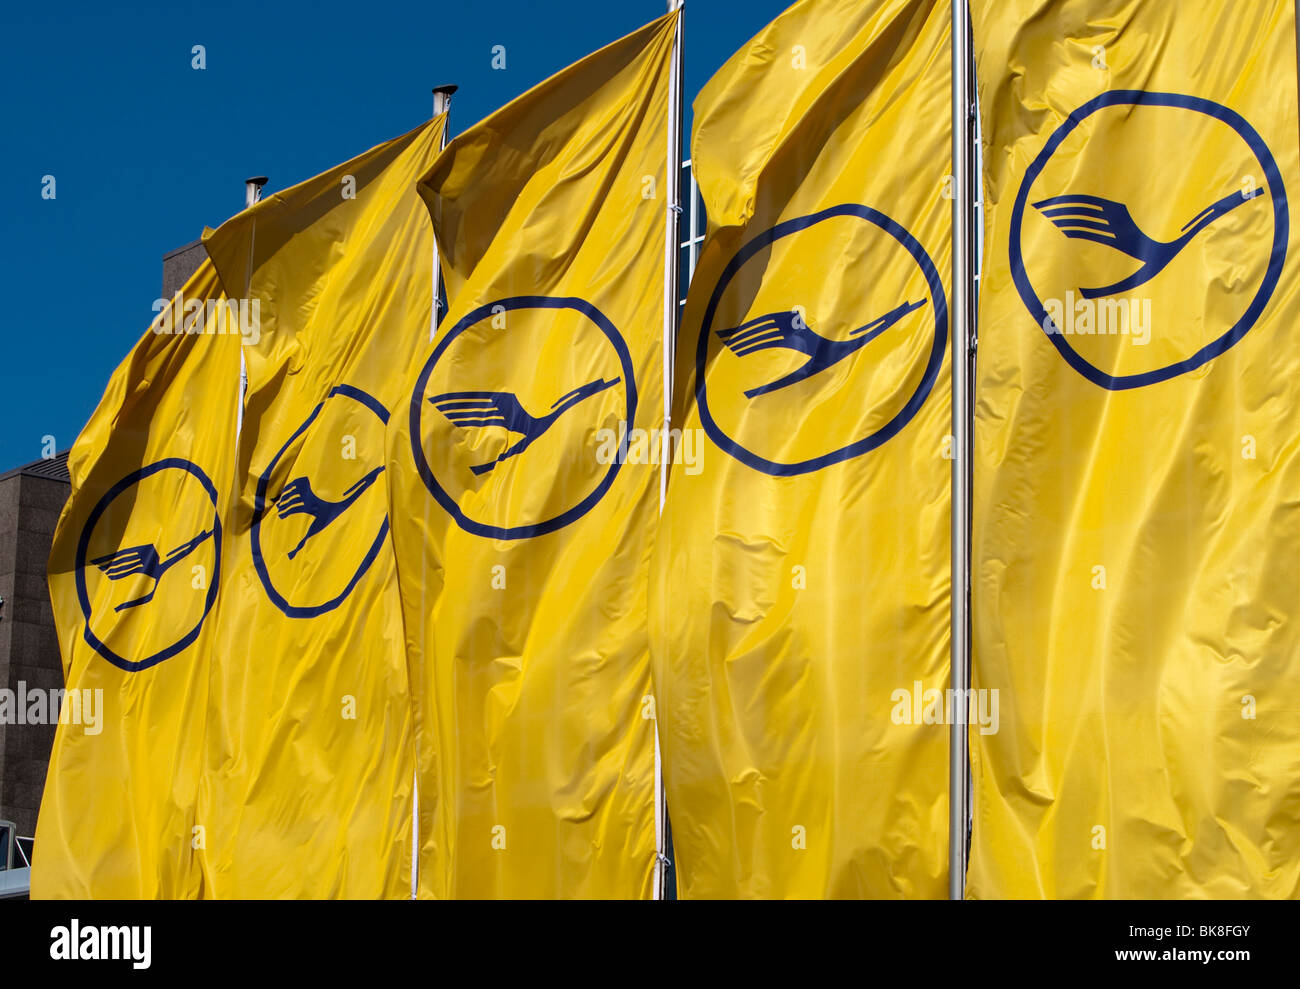 Flags of the German Lufthansa - Stock Image